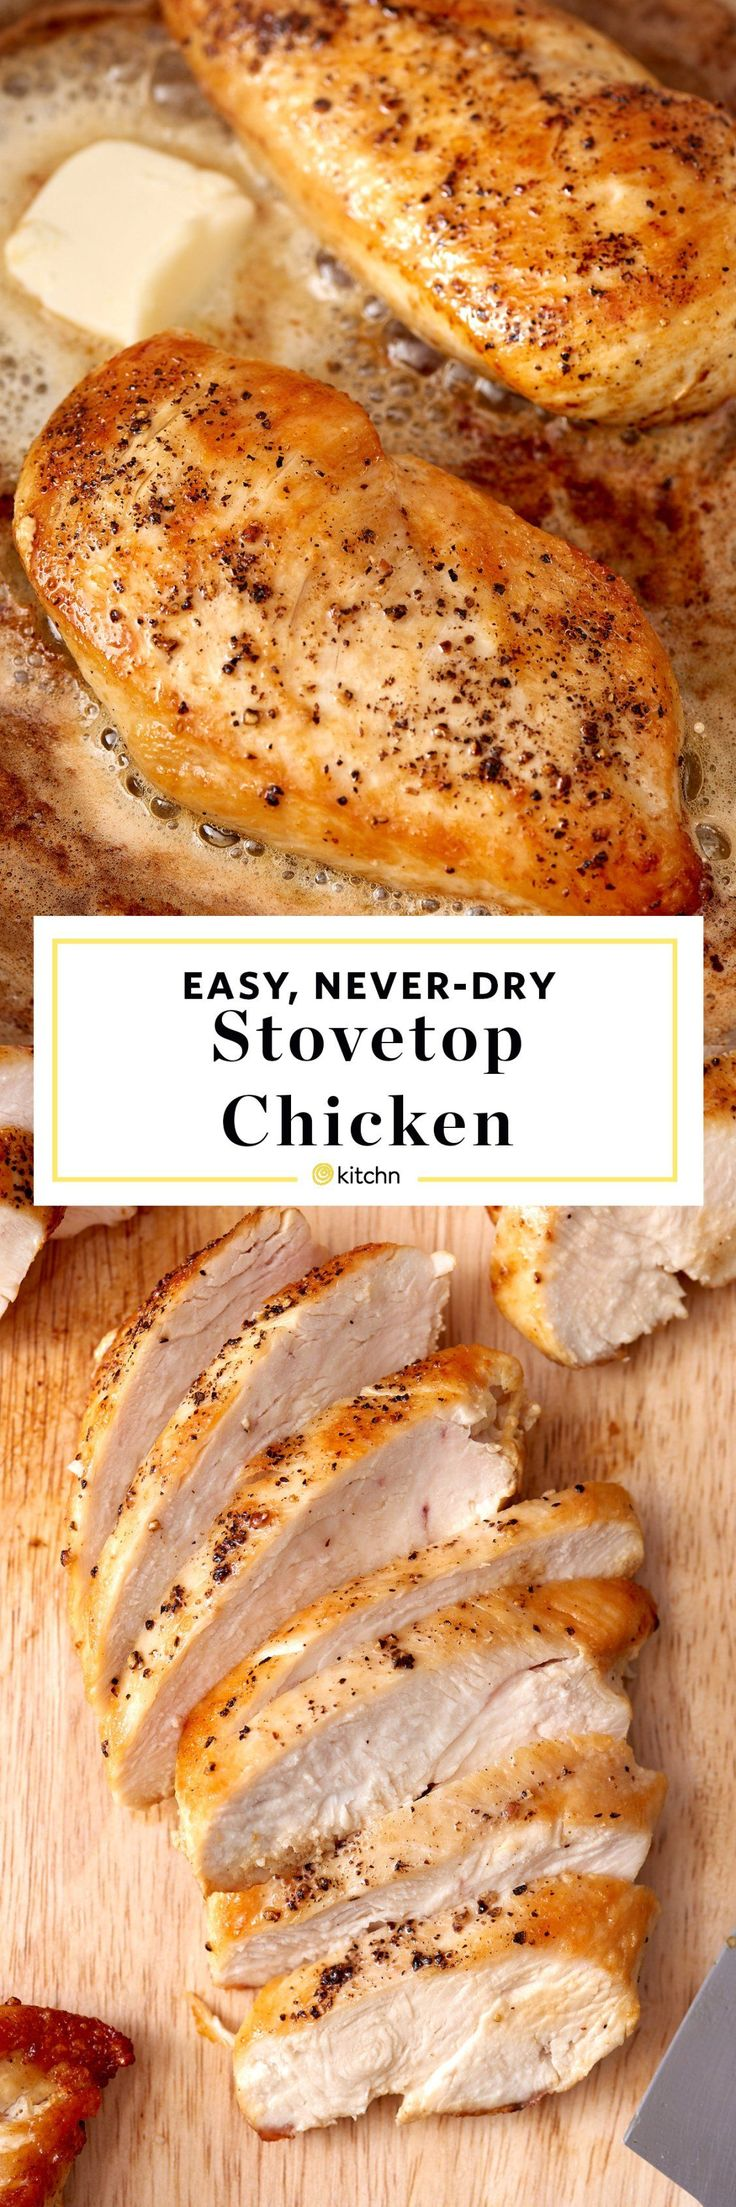 No more boring chicken breast recipes! This collection of healthy chicken breast recipes will make you fall in love with this lean protein all over again. There's nothing like a list of scrumptious chicken breast recipes to get you excited about healthy cooking! For awhile, I completely avoided boneless, skinless chicken breast recipes and opted for chicken .